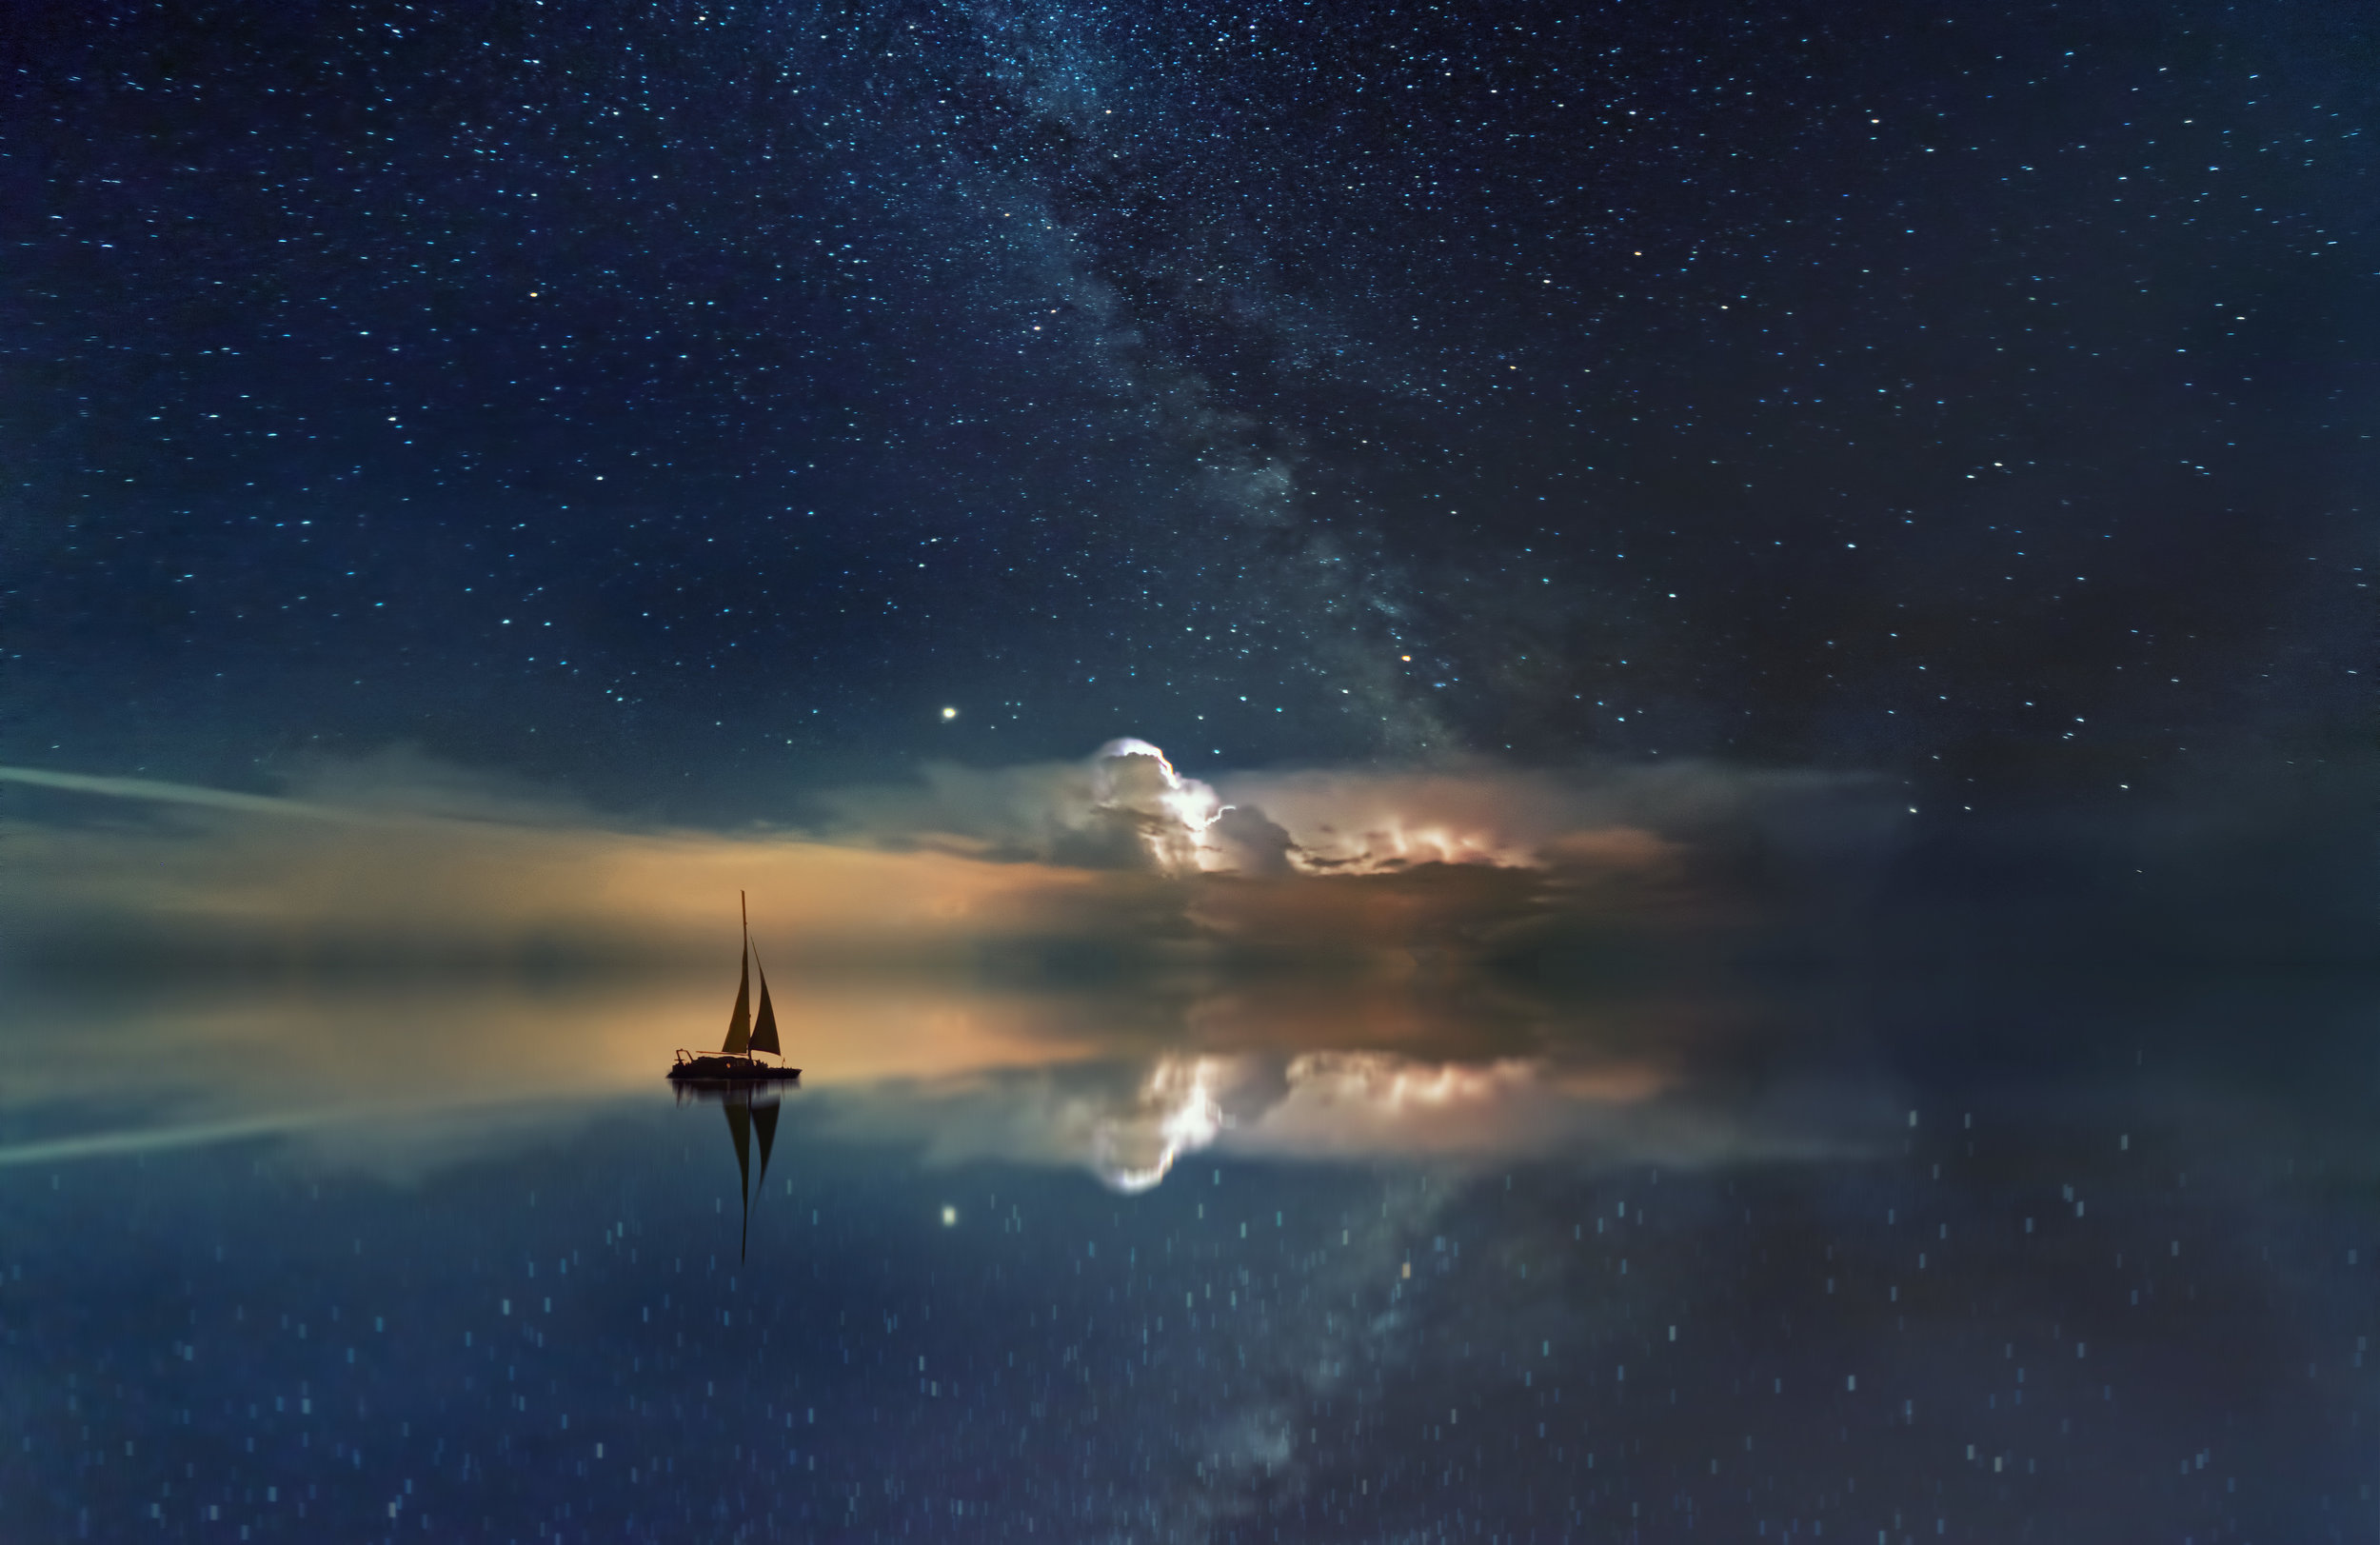 [Photo ID: A photo of an evening starry sky, a sail boat is floating in the water towards the peach clouds]